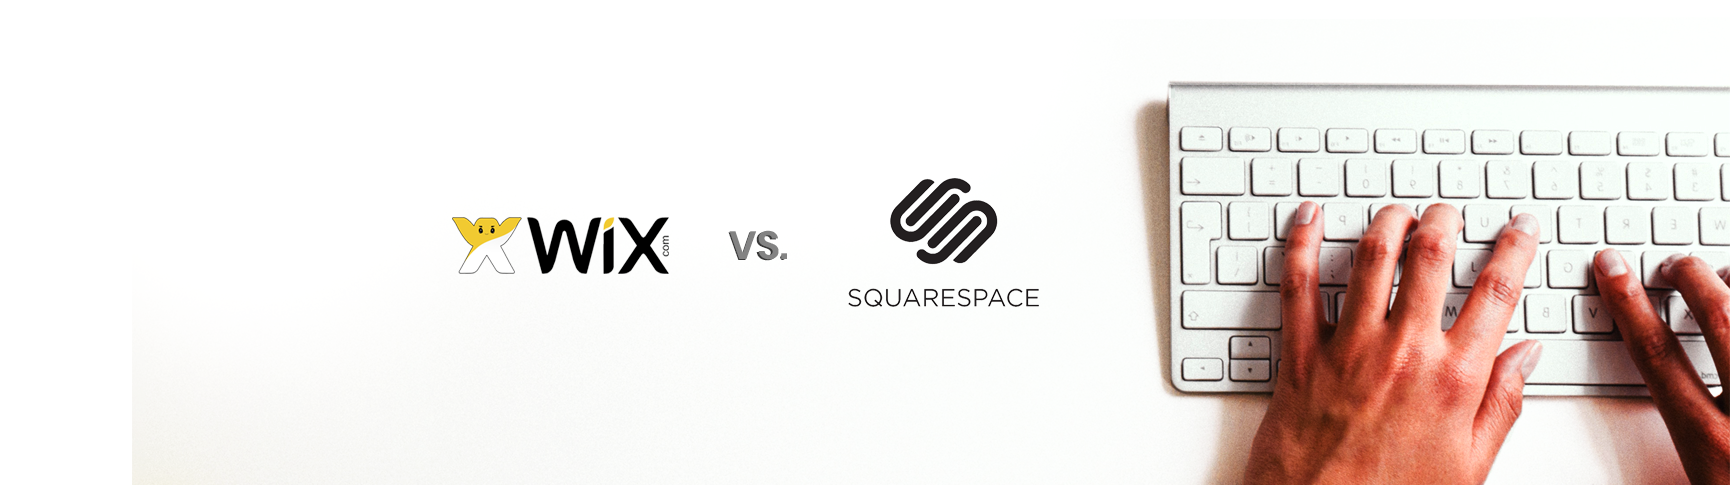 Compare Wix Vs Squarespace, Is Wix Better Than Squarespace